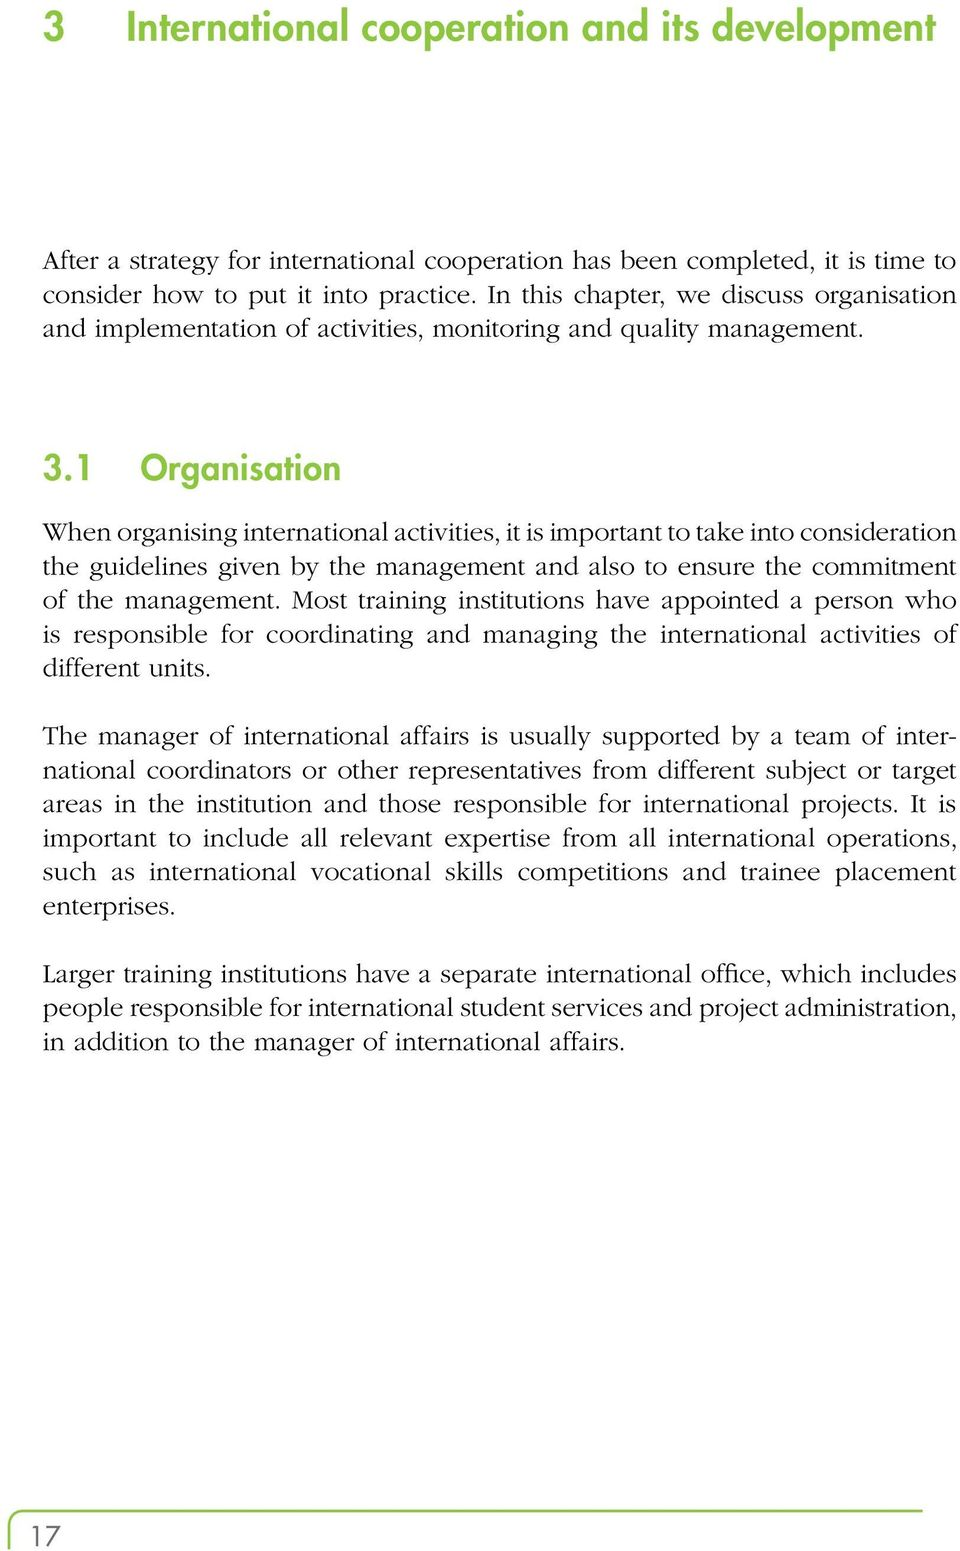 1 Organisation When organising international activities, it is important to take into consideration the guidelines given by the management and also to ensure the commitment of the management.